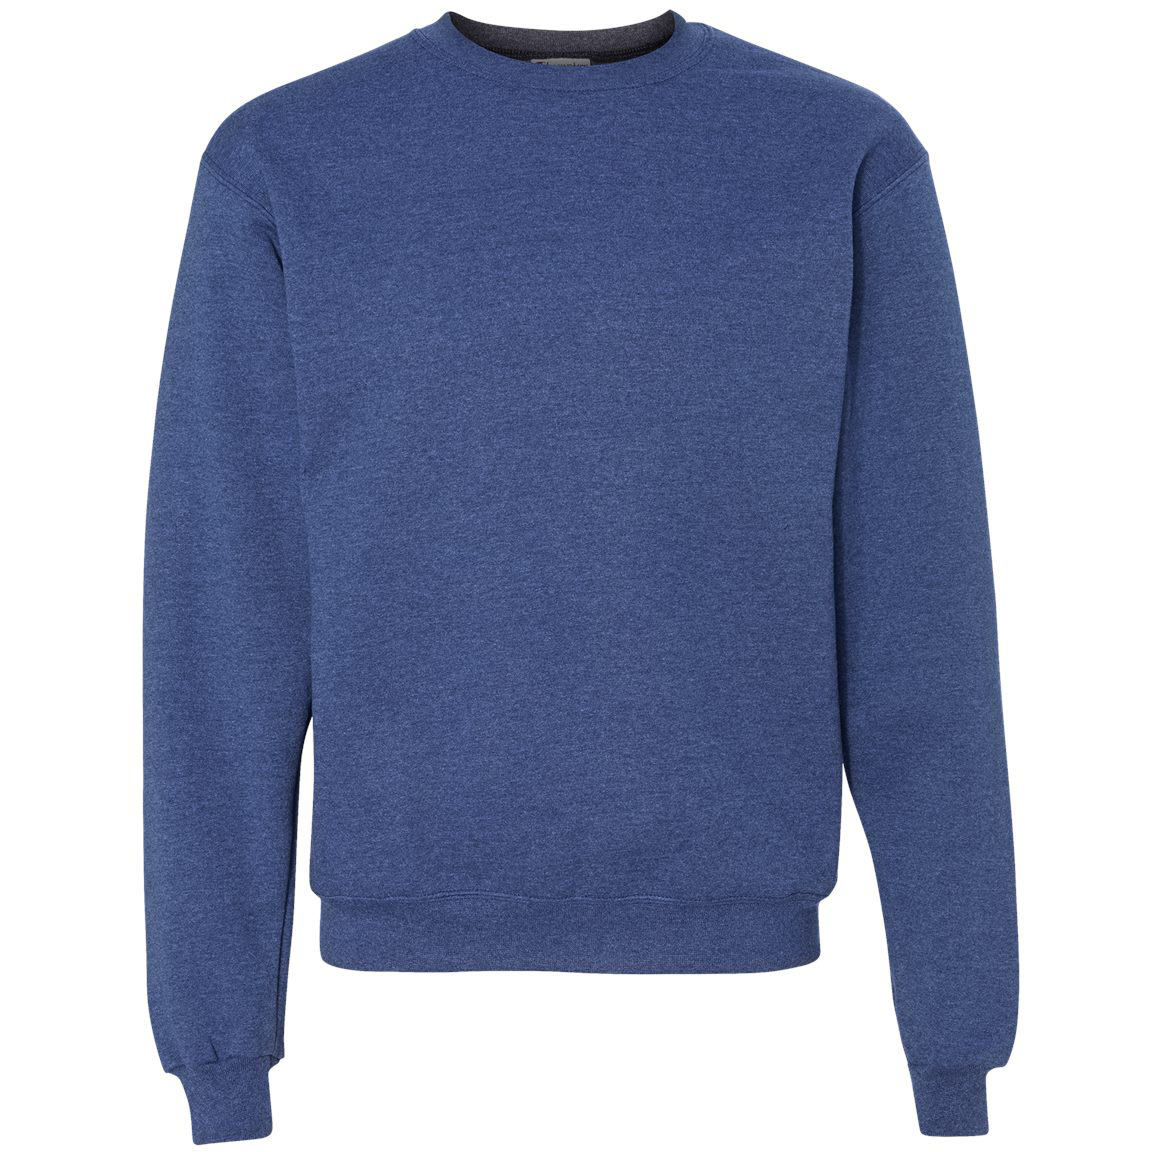 33ec6a281528 Champion S600 Double Dry Eco Crewneck Sweatshirt - Royal Blue ...